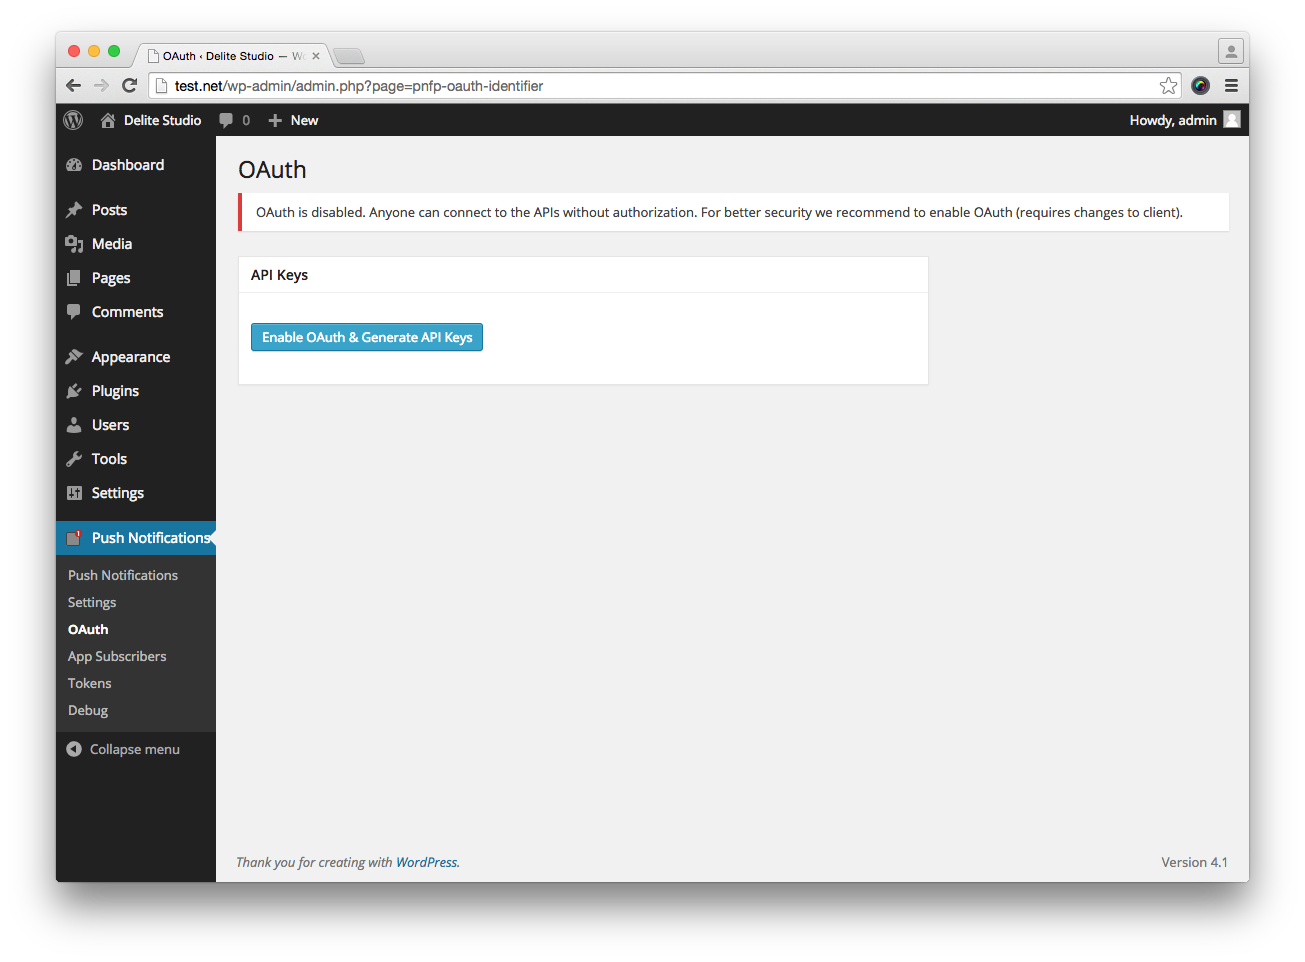 The OAuth page (with OAuth disabled).